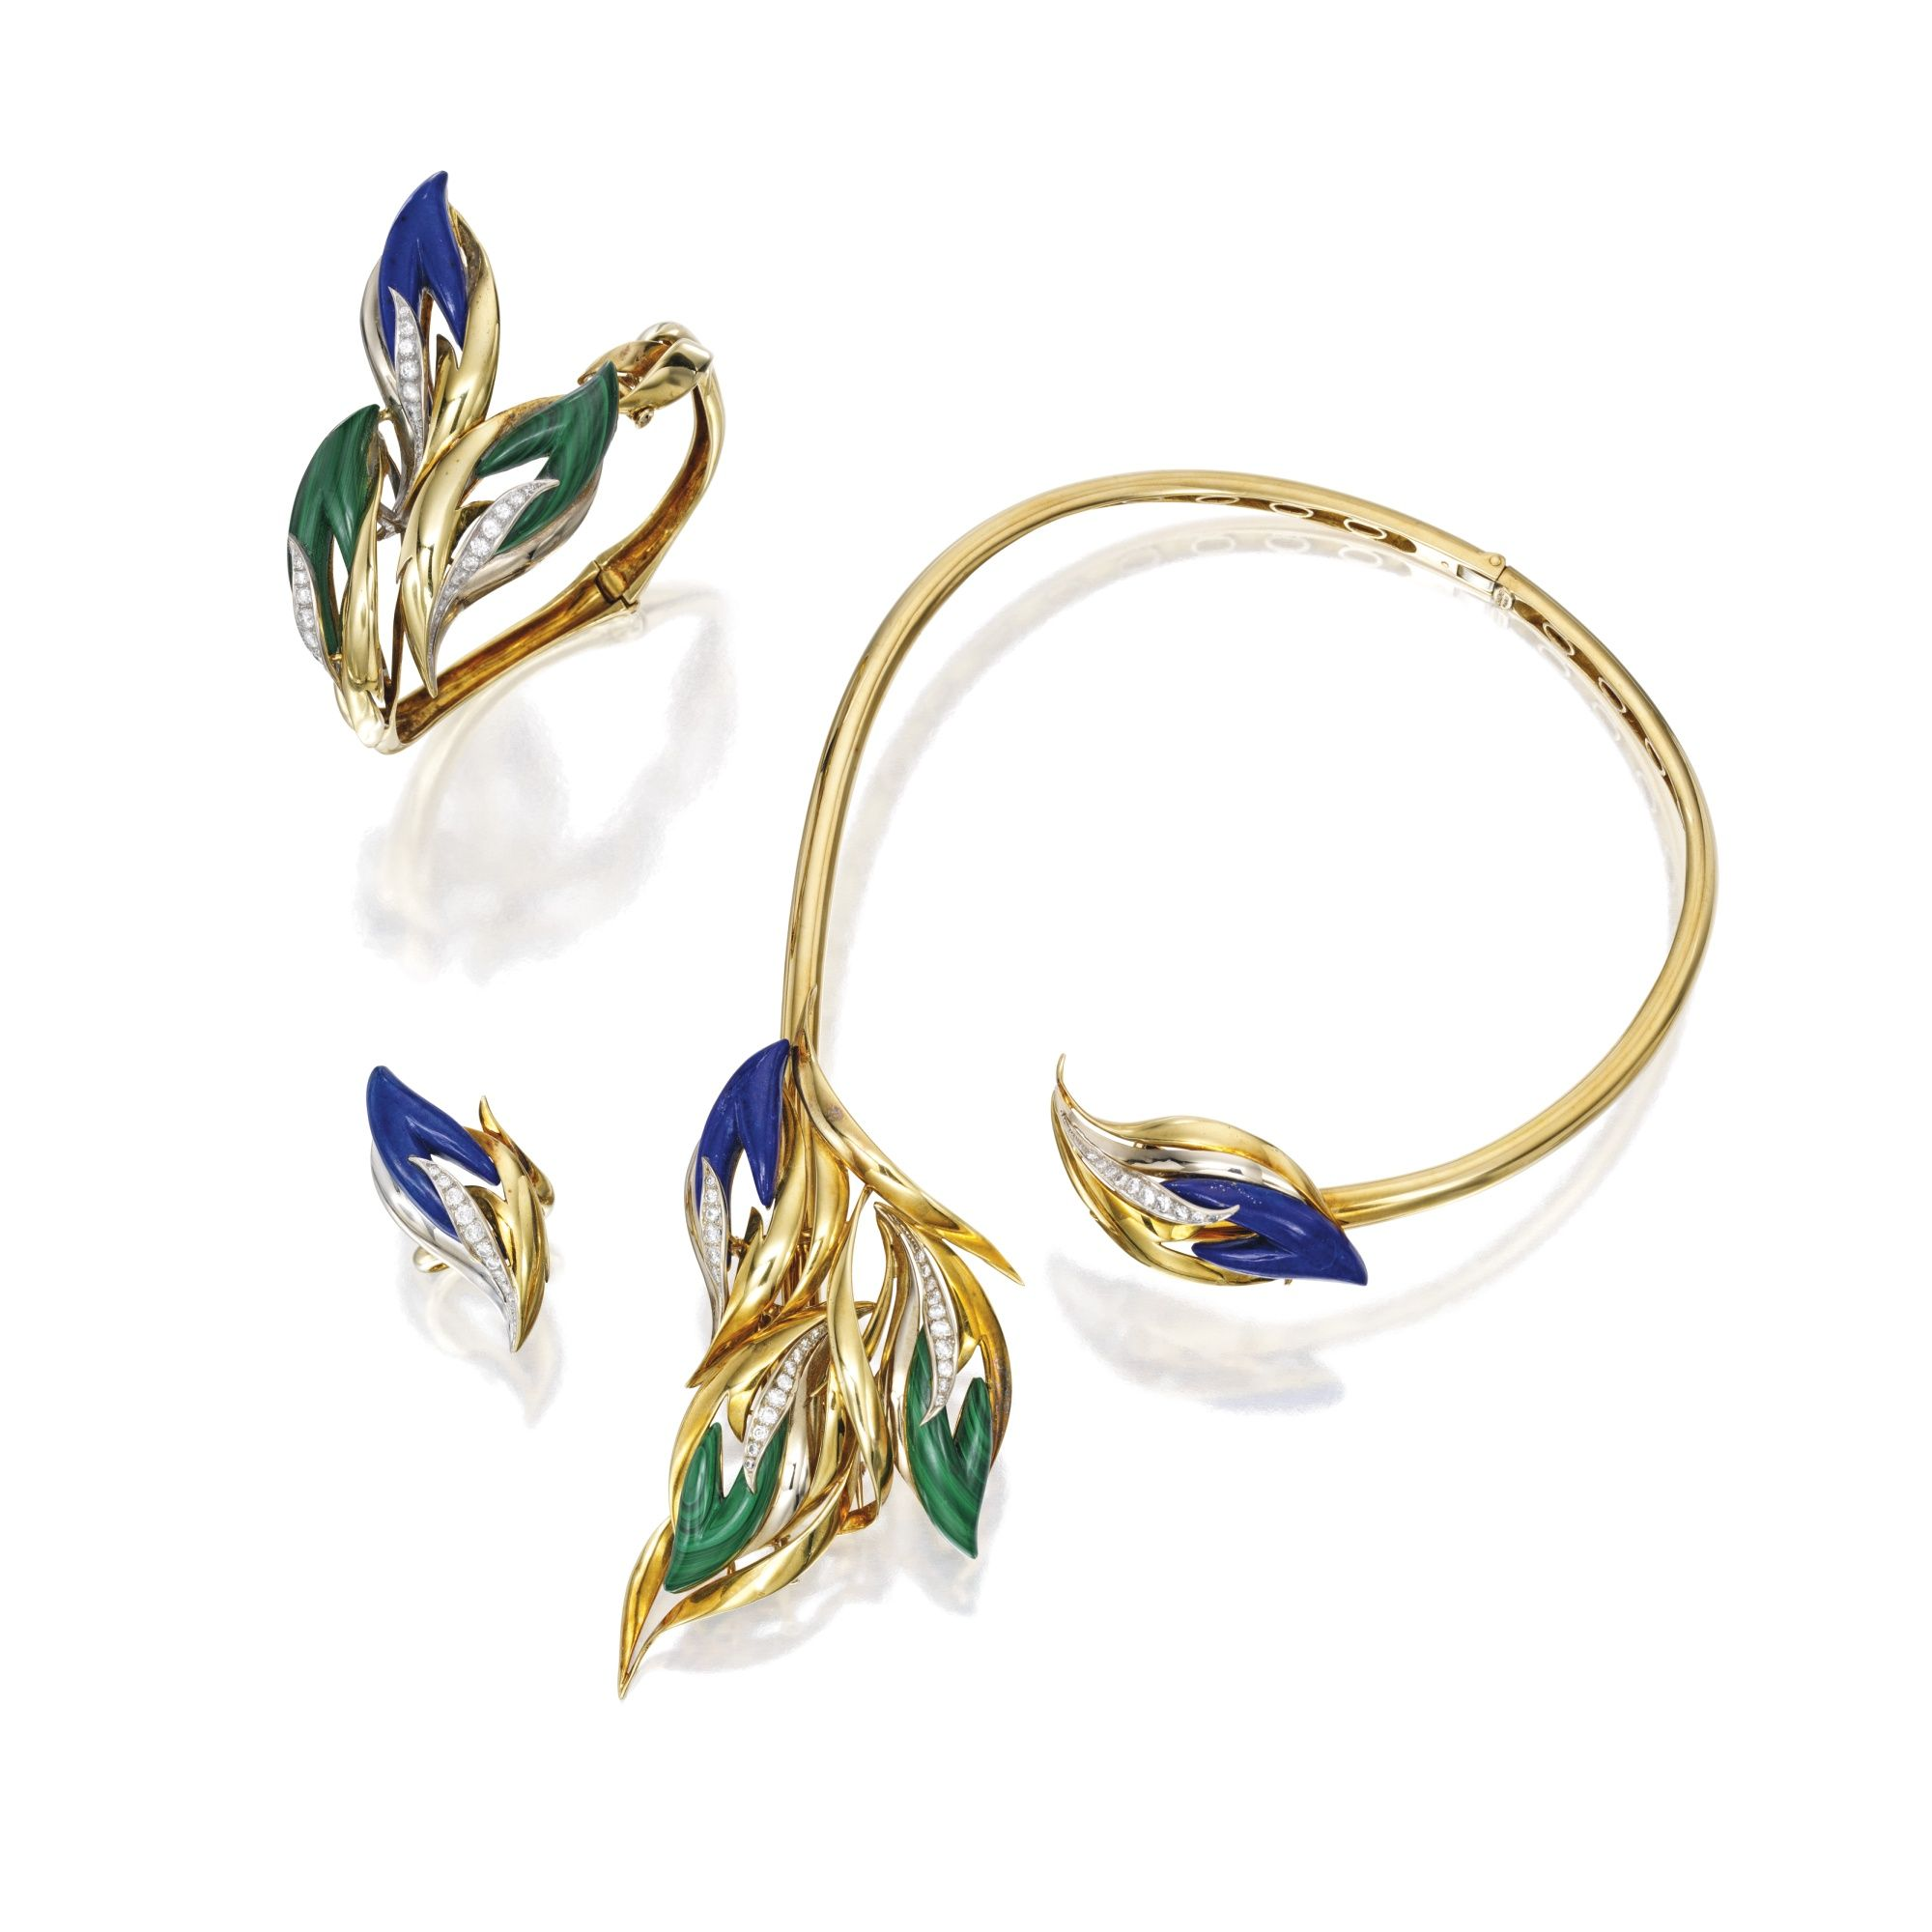 e0e2ddc28 Suite of Two-Color Gold, Malachite, Lapis Lazuli and Diamond Jewelry,  Chaumet, Paris Comprising a necklace, bracelet and ring of stylized foliate  design, ...